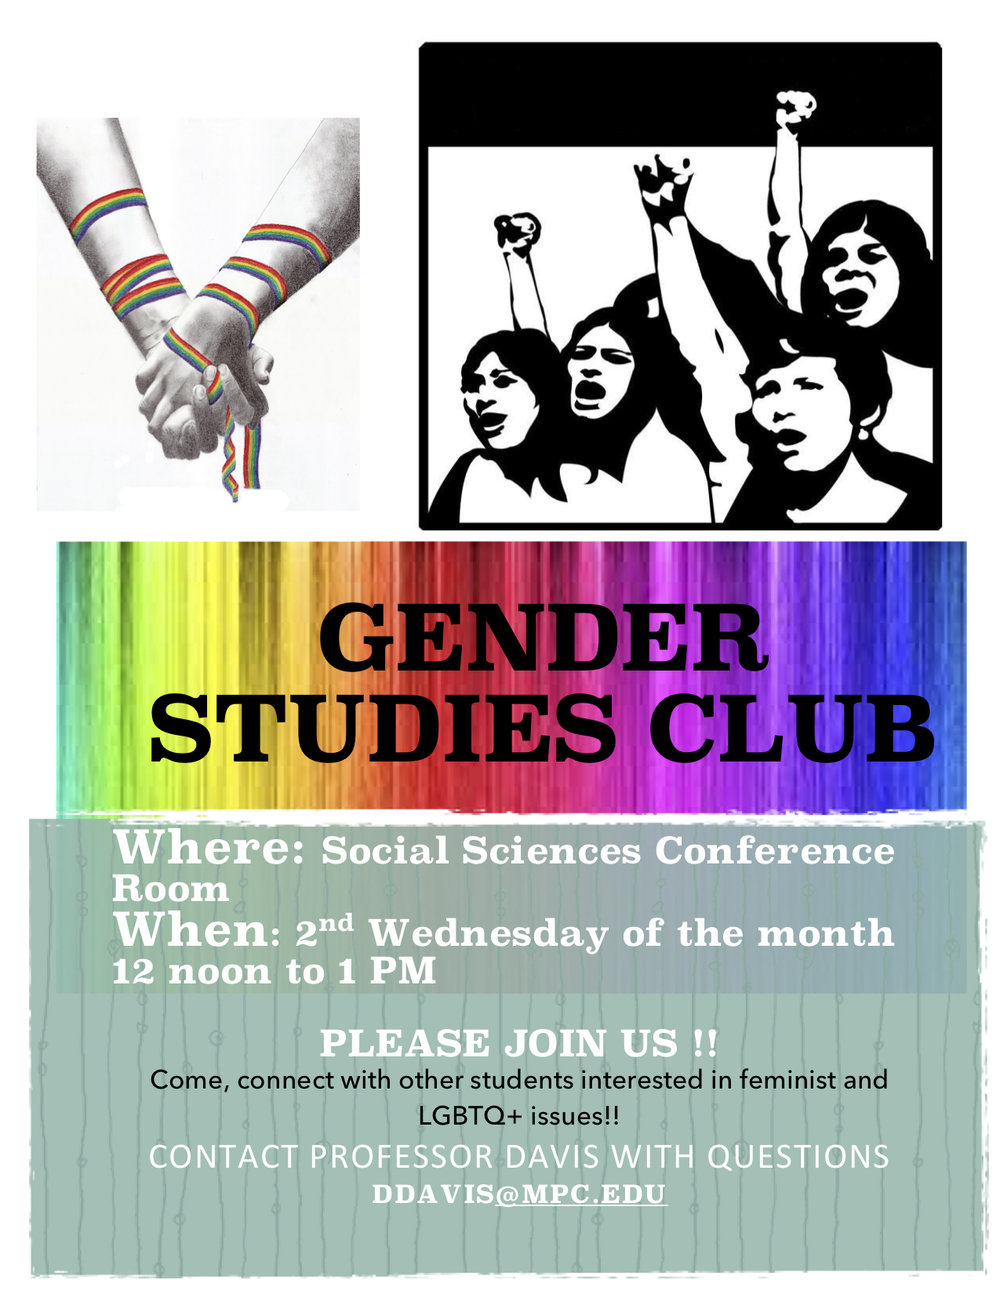 SP 2018 GS Club Meetings flyer.jpg